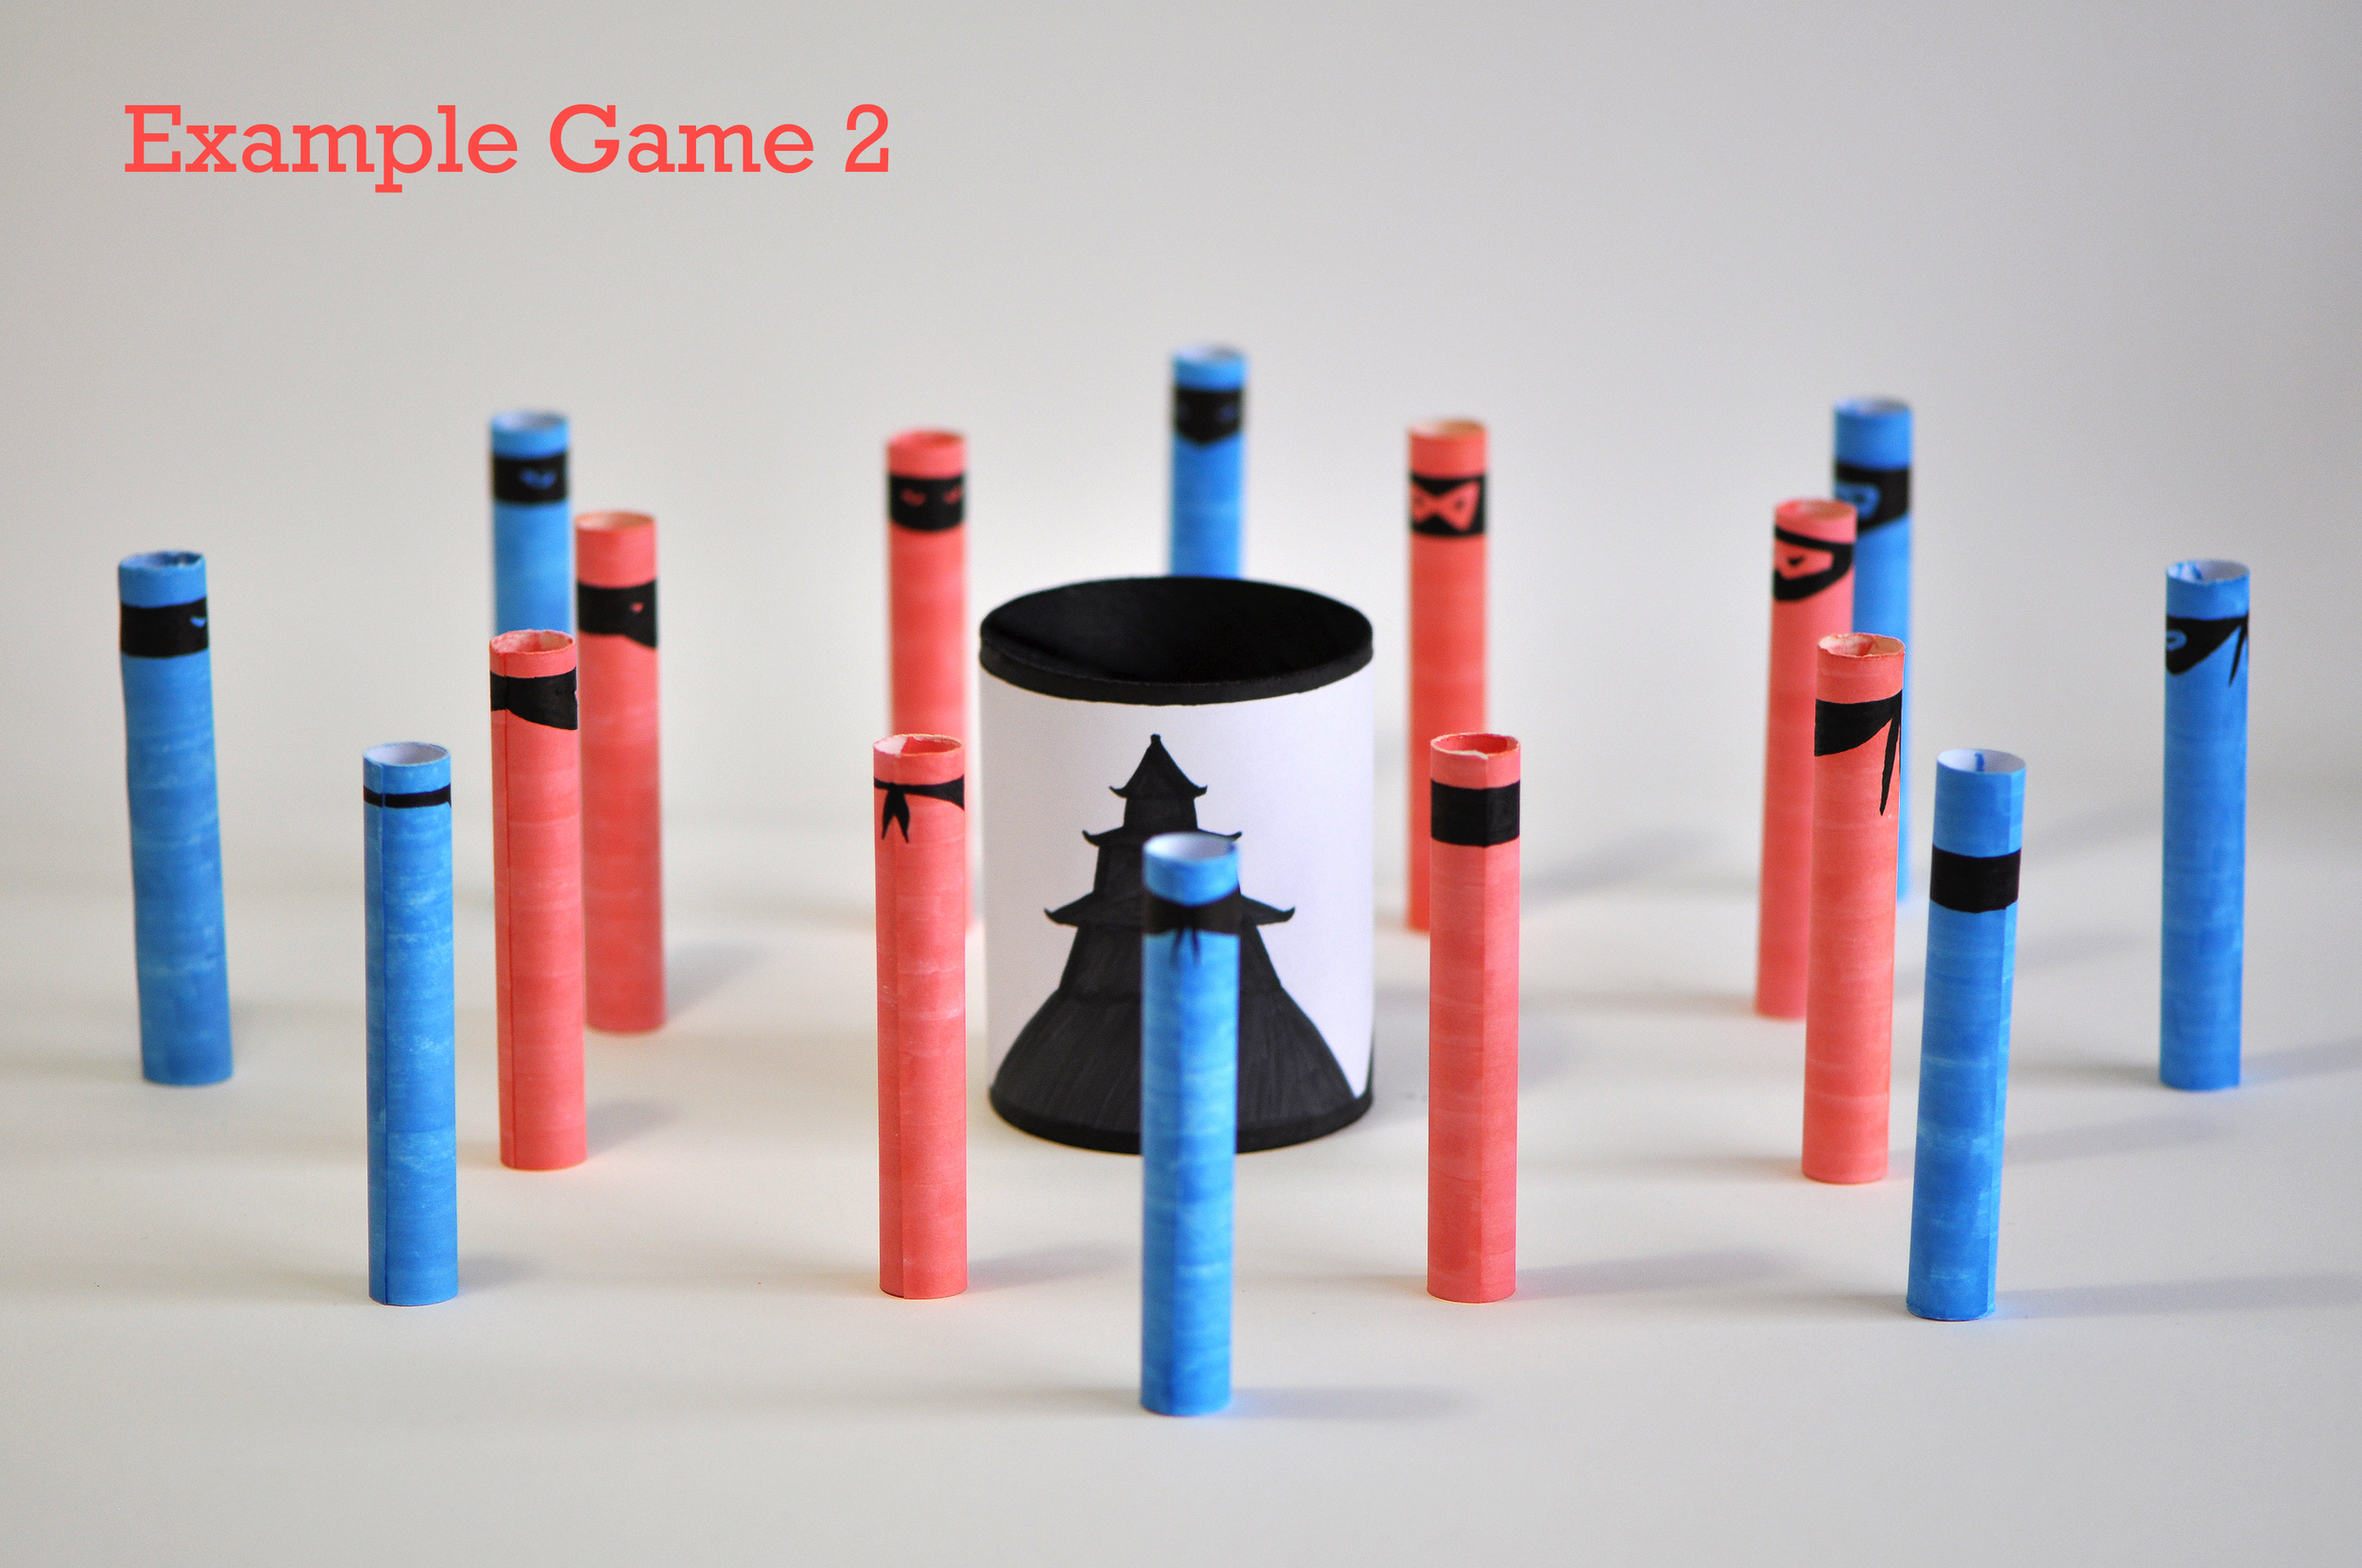 Two or more players (two players in this setup) all try to hit the blue ninjas and avoid the red ones. If a red ninja is knocked down, the kill doesn't count and all red and blue ninjas hit in this turn must be put back up. At the end the person having killed the most blue ninjas wins.